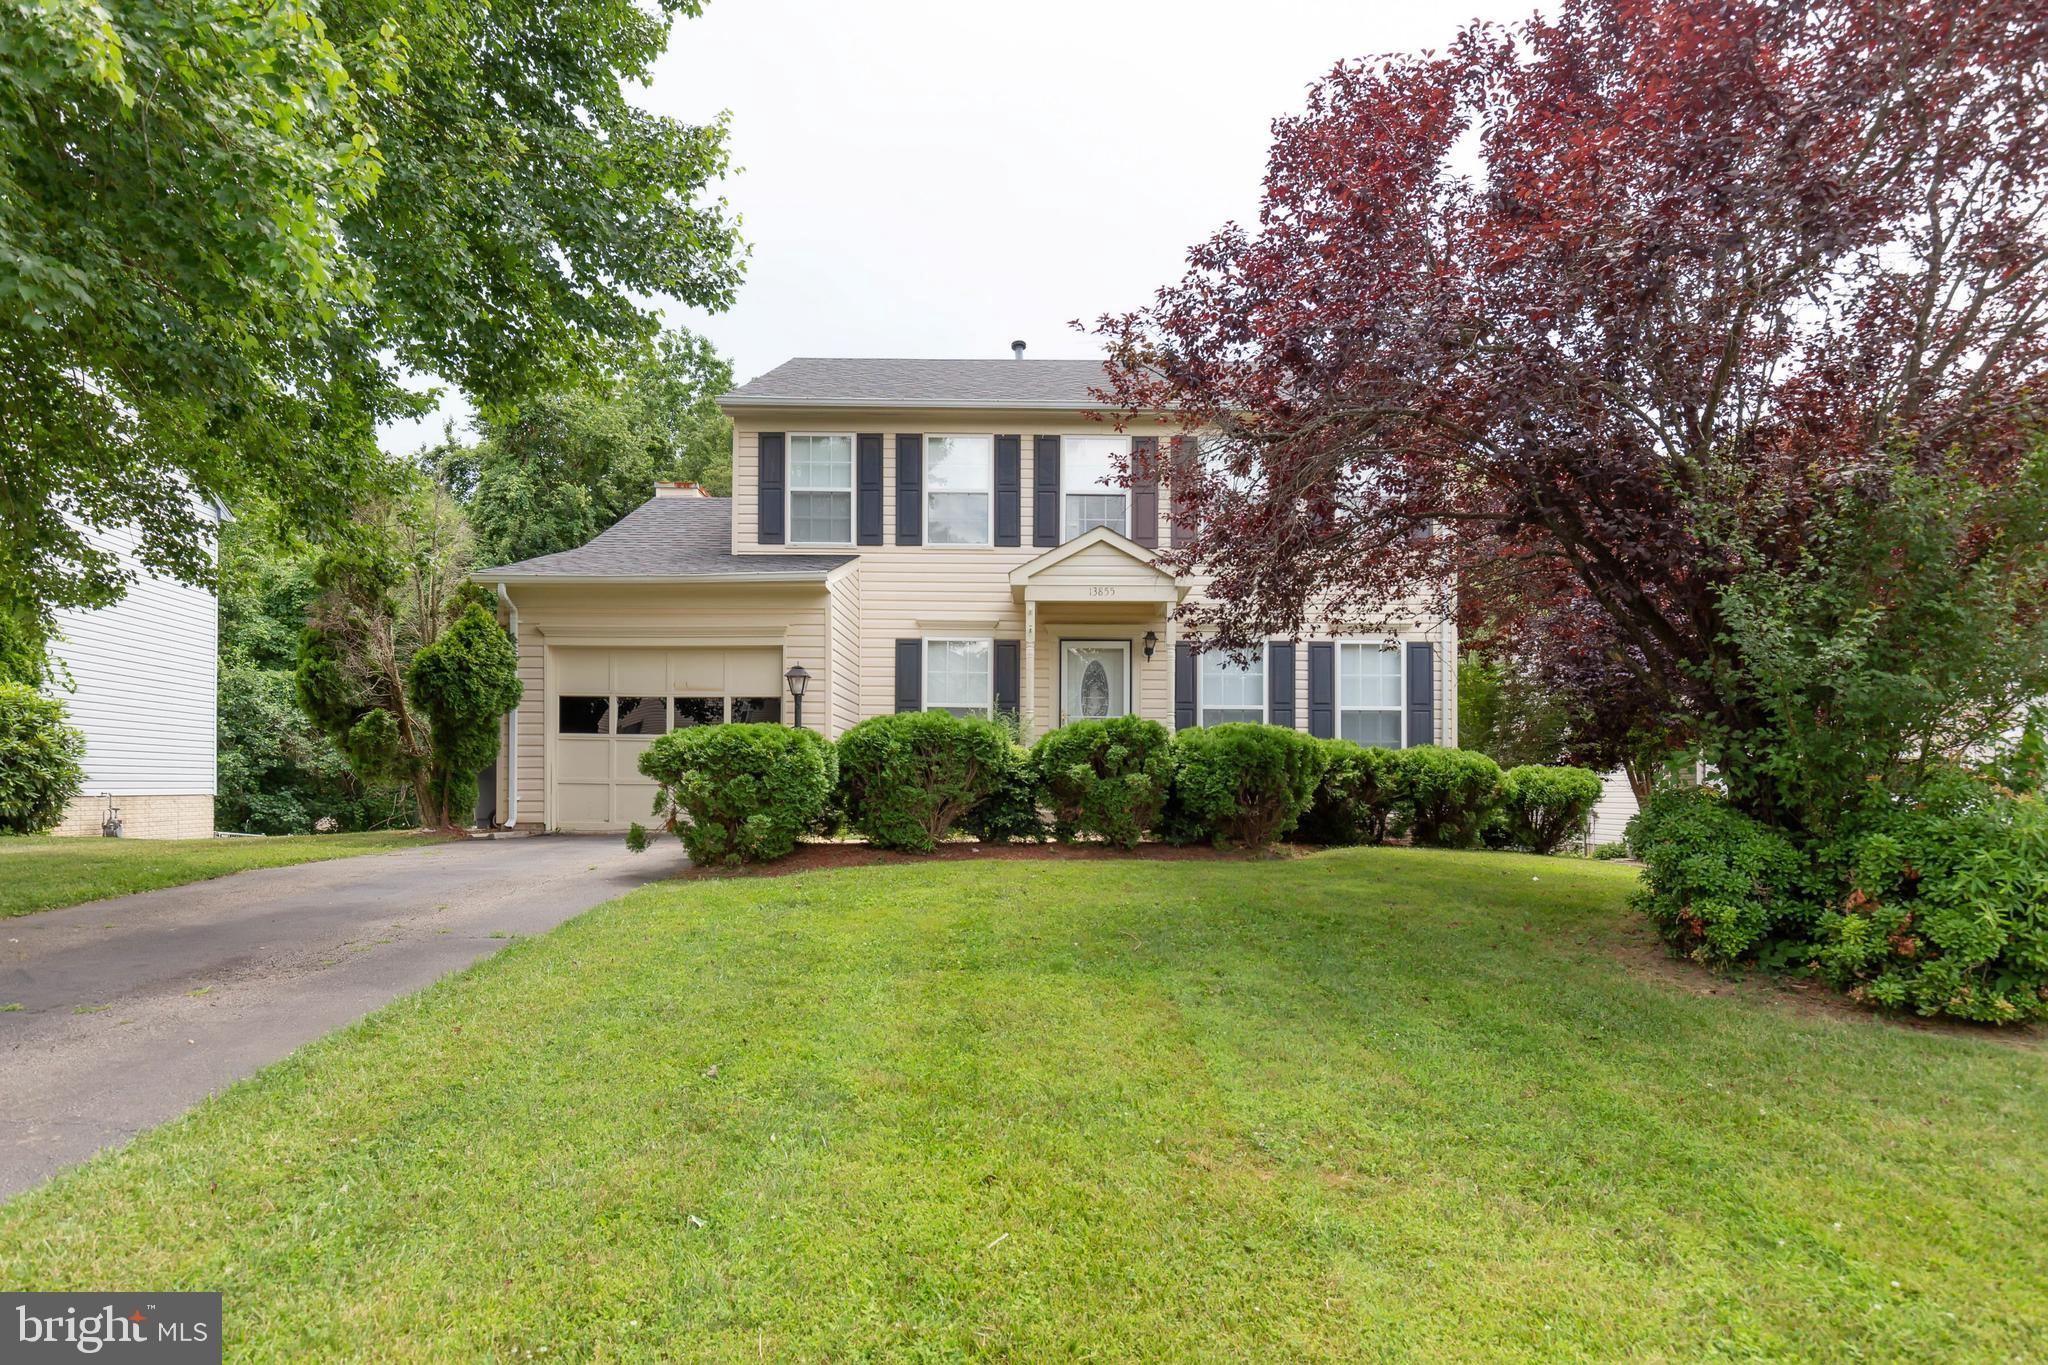 Price adjustment!Convenient to shopping, schools and water park! This Colonial is located on a culdesac and features a 3 season room, newer windows, roof, HVAC. Backs to woods. Enjoy the wonderful deck for summer cookouts! Newer roof, hvac, windows New garage door.